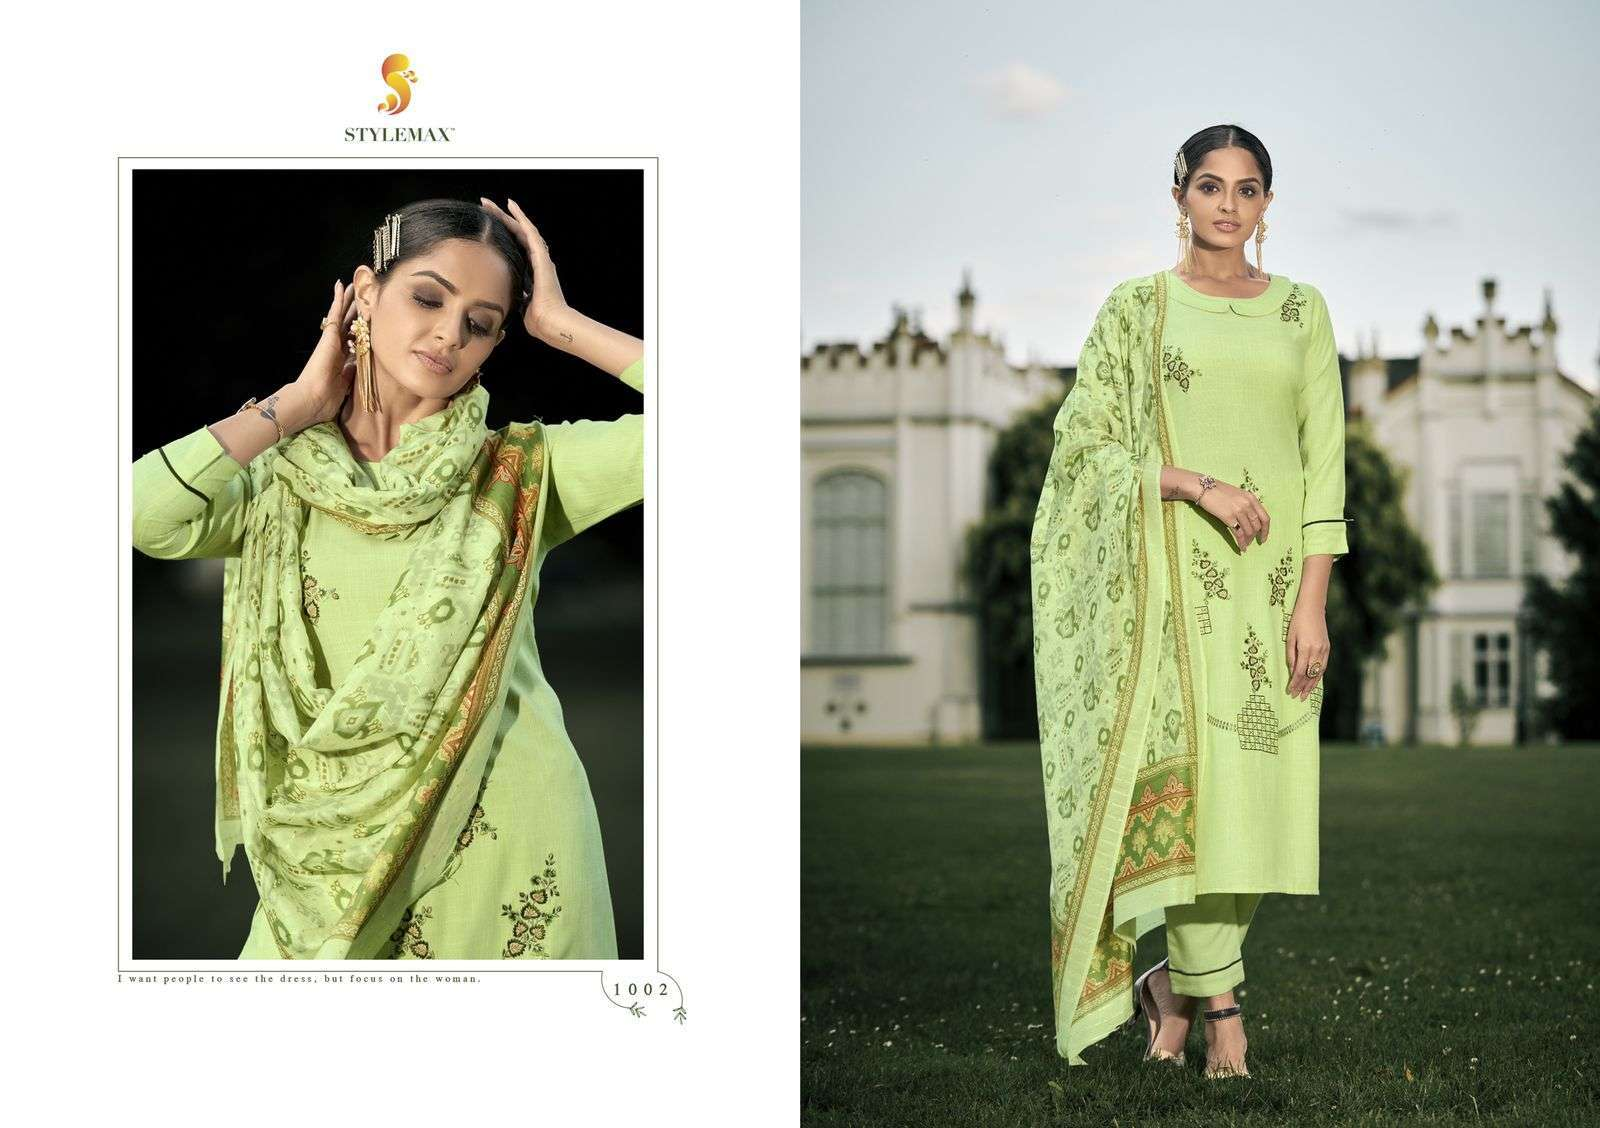 Stylemax Sajni Vol 1 Cotton With Embroidery Work readymade Suits collection